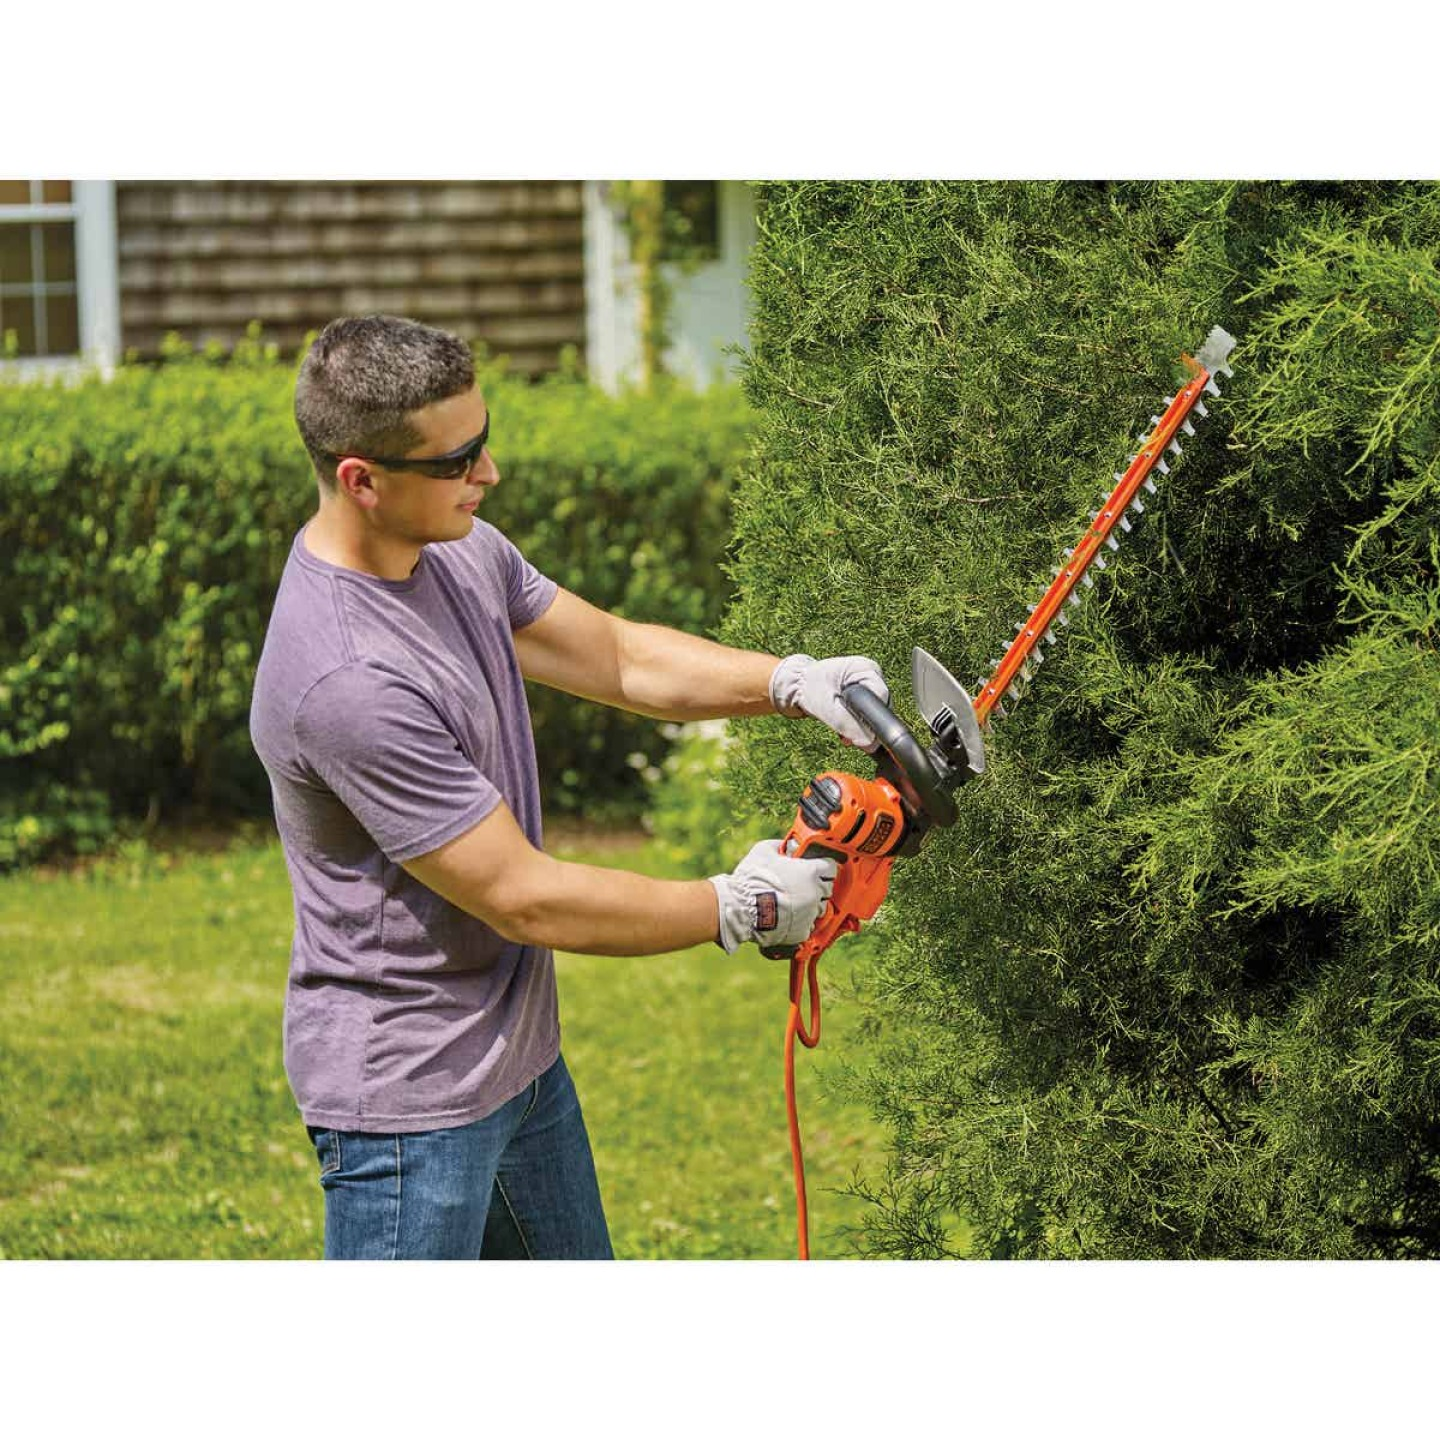 Black & Decker Sawblade 20 In. 3A Corded Electric Hedge Trimmer Image 3